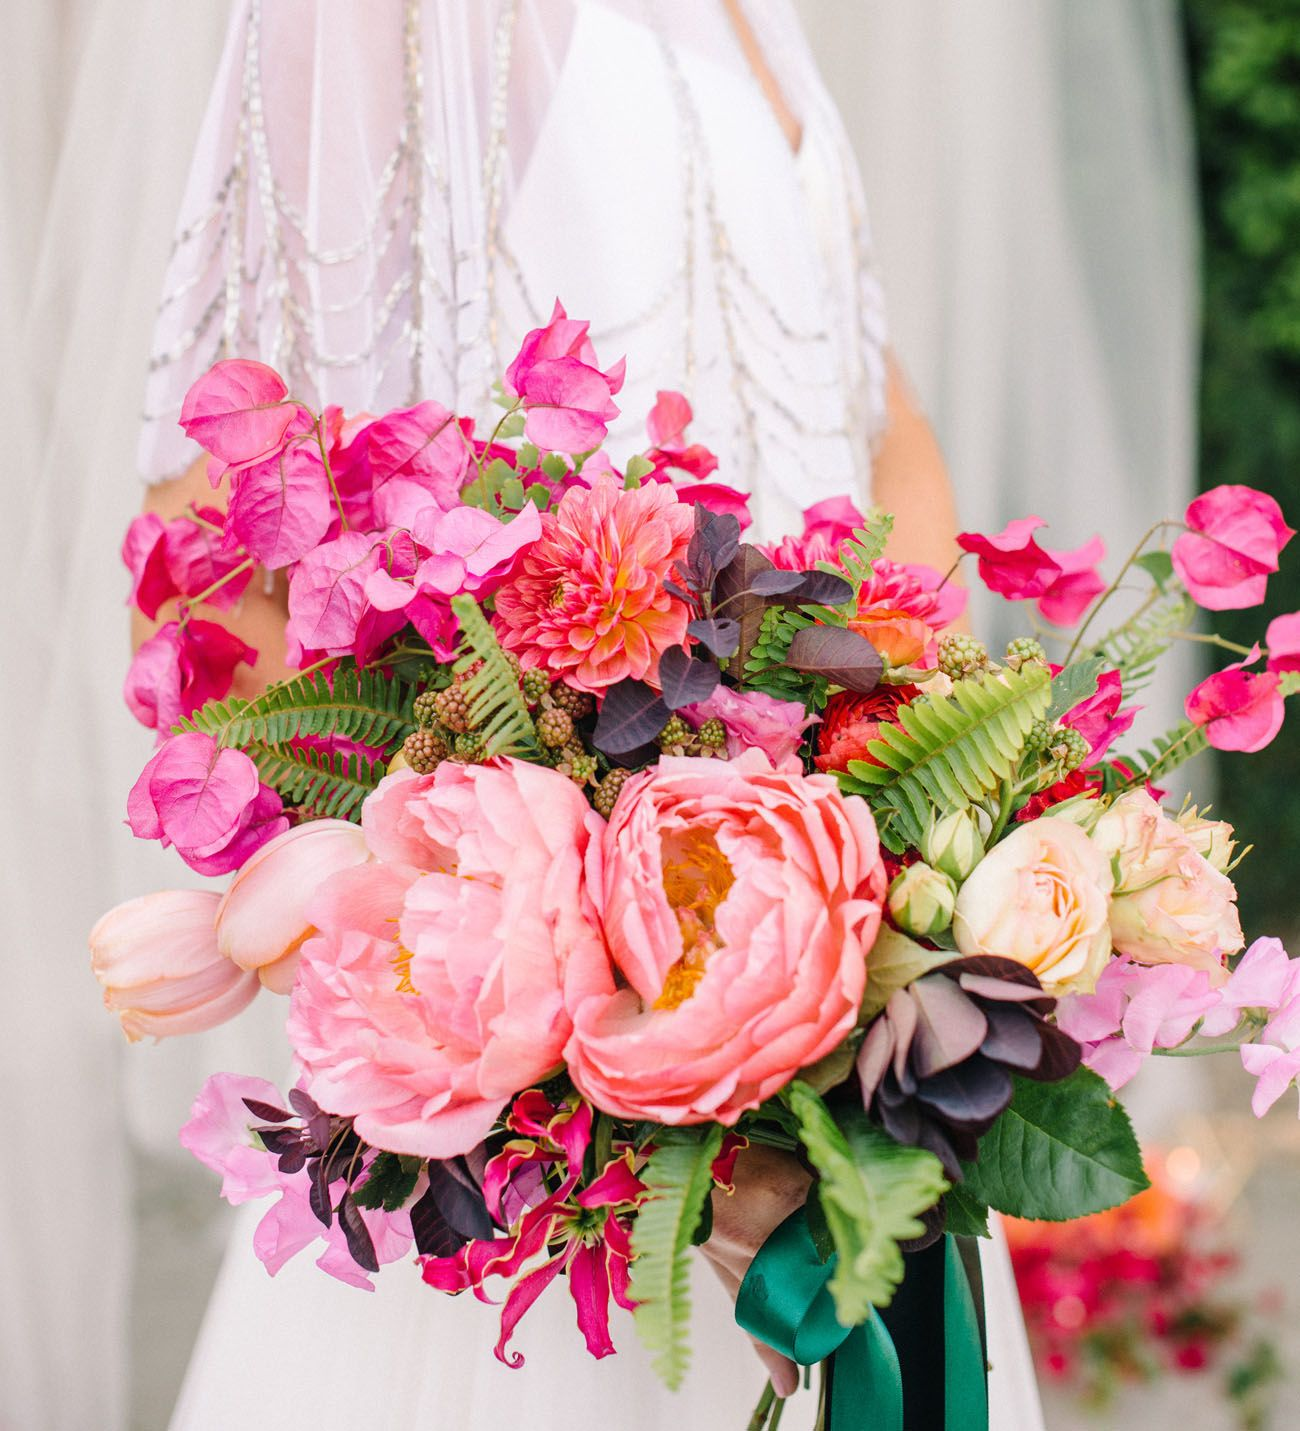 20 Best Spring Wedding Bouquets - Bridal Bouquets